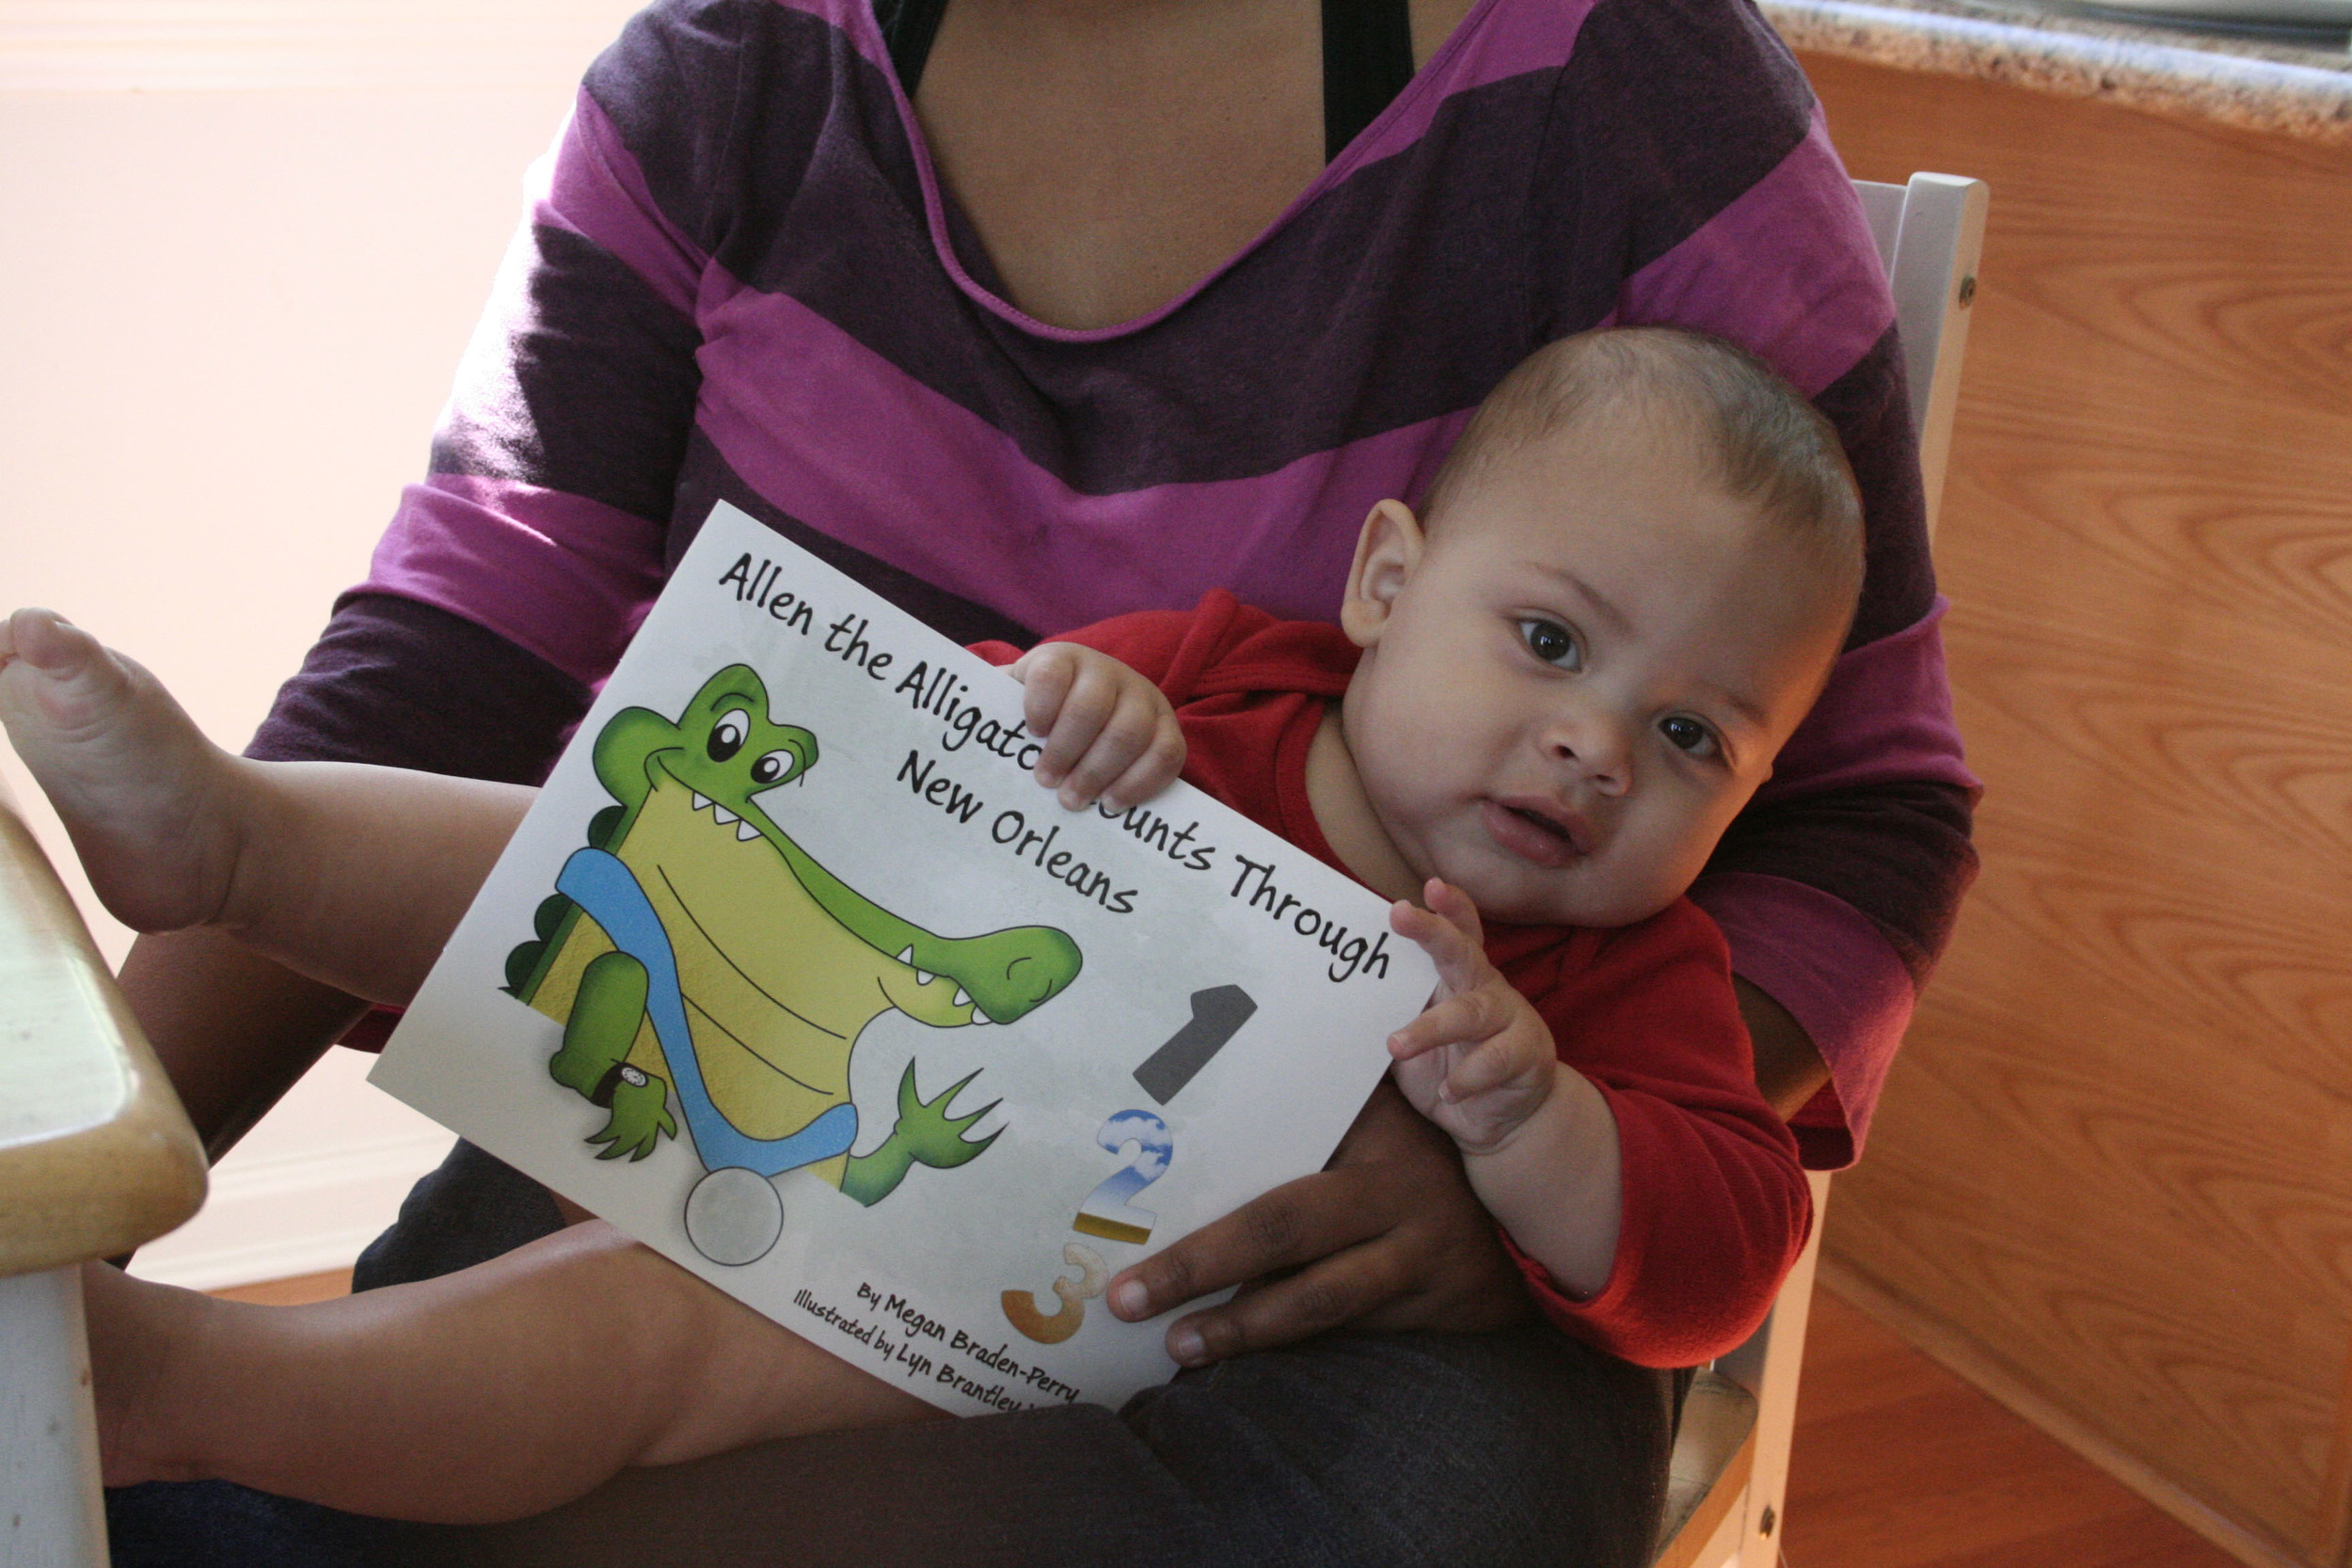 megan and her son showing off the advance copy of our book.